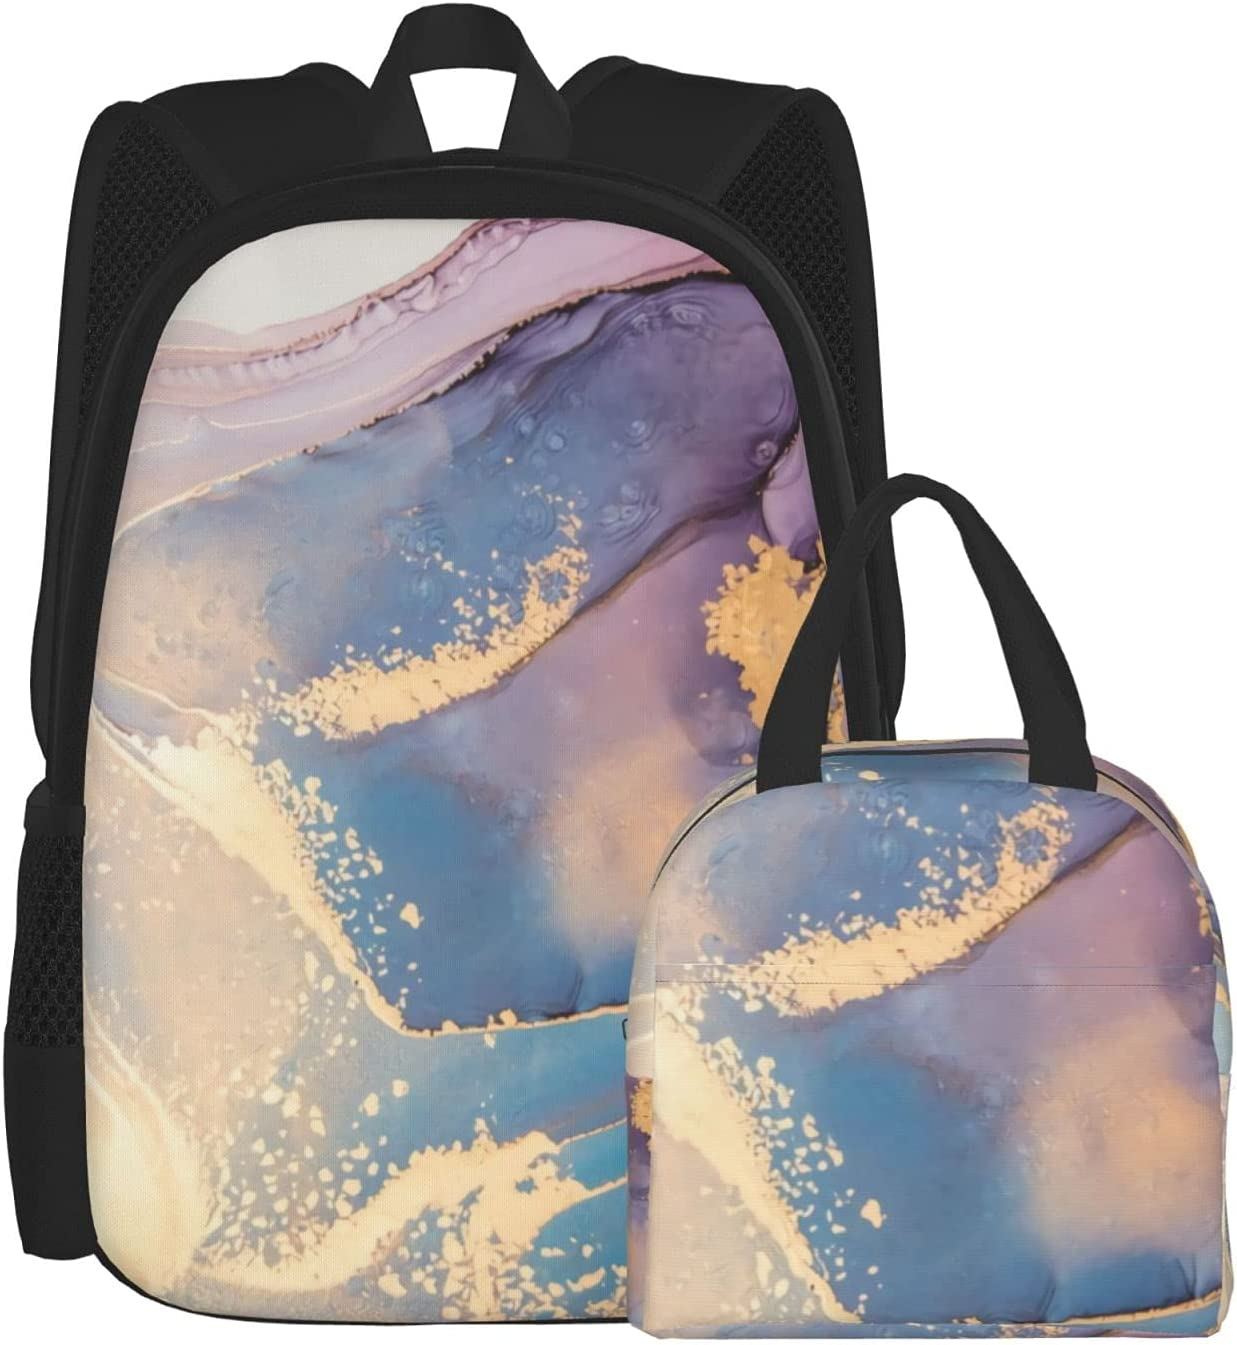 Backpack Lunch Bag Brand new Sets for Max 53% OFF Boys and Marble Purple Girls Blue